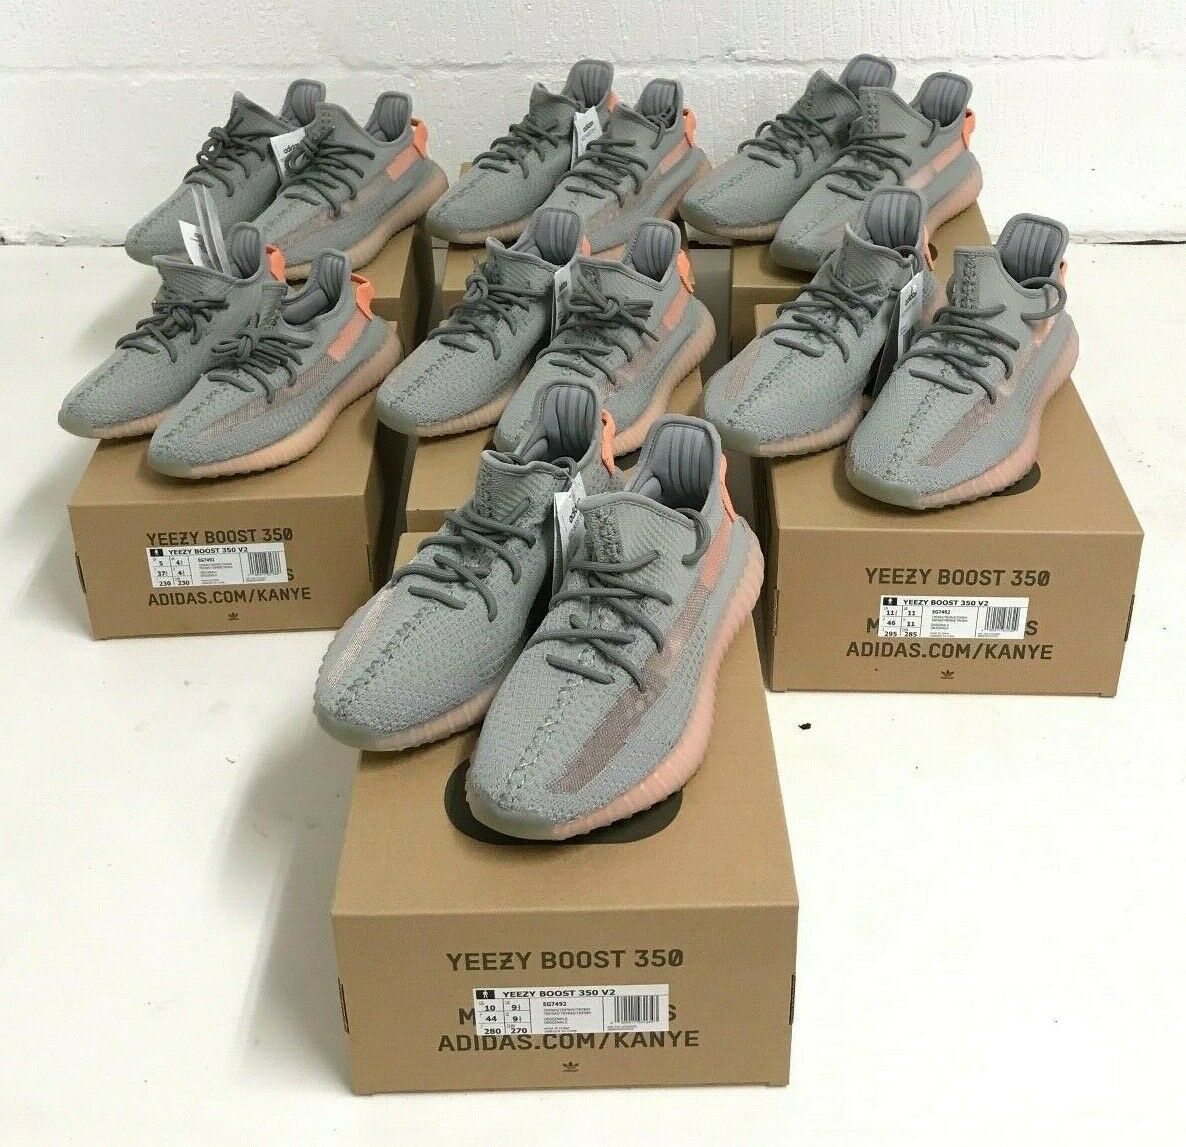 Adidas Yeezy Boost 350 V2  Grey TRFM EG7492 Sizes 3 4.5 5 5.5 6 static 3m 700